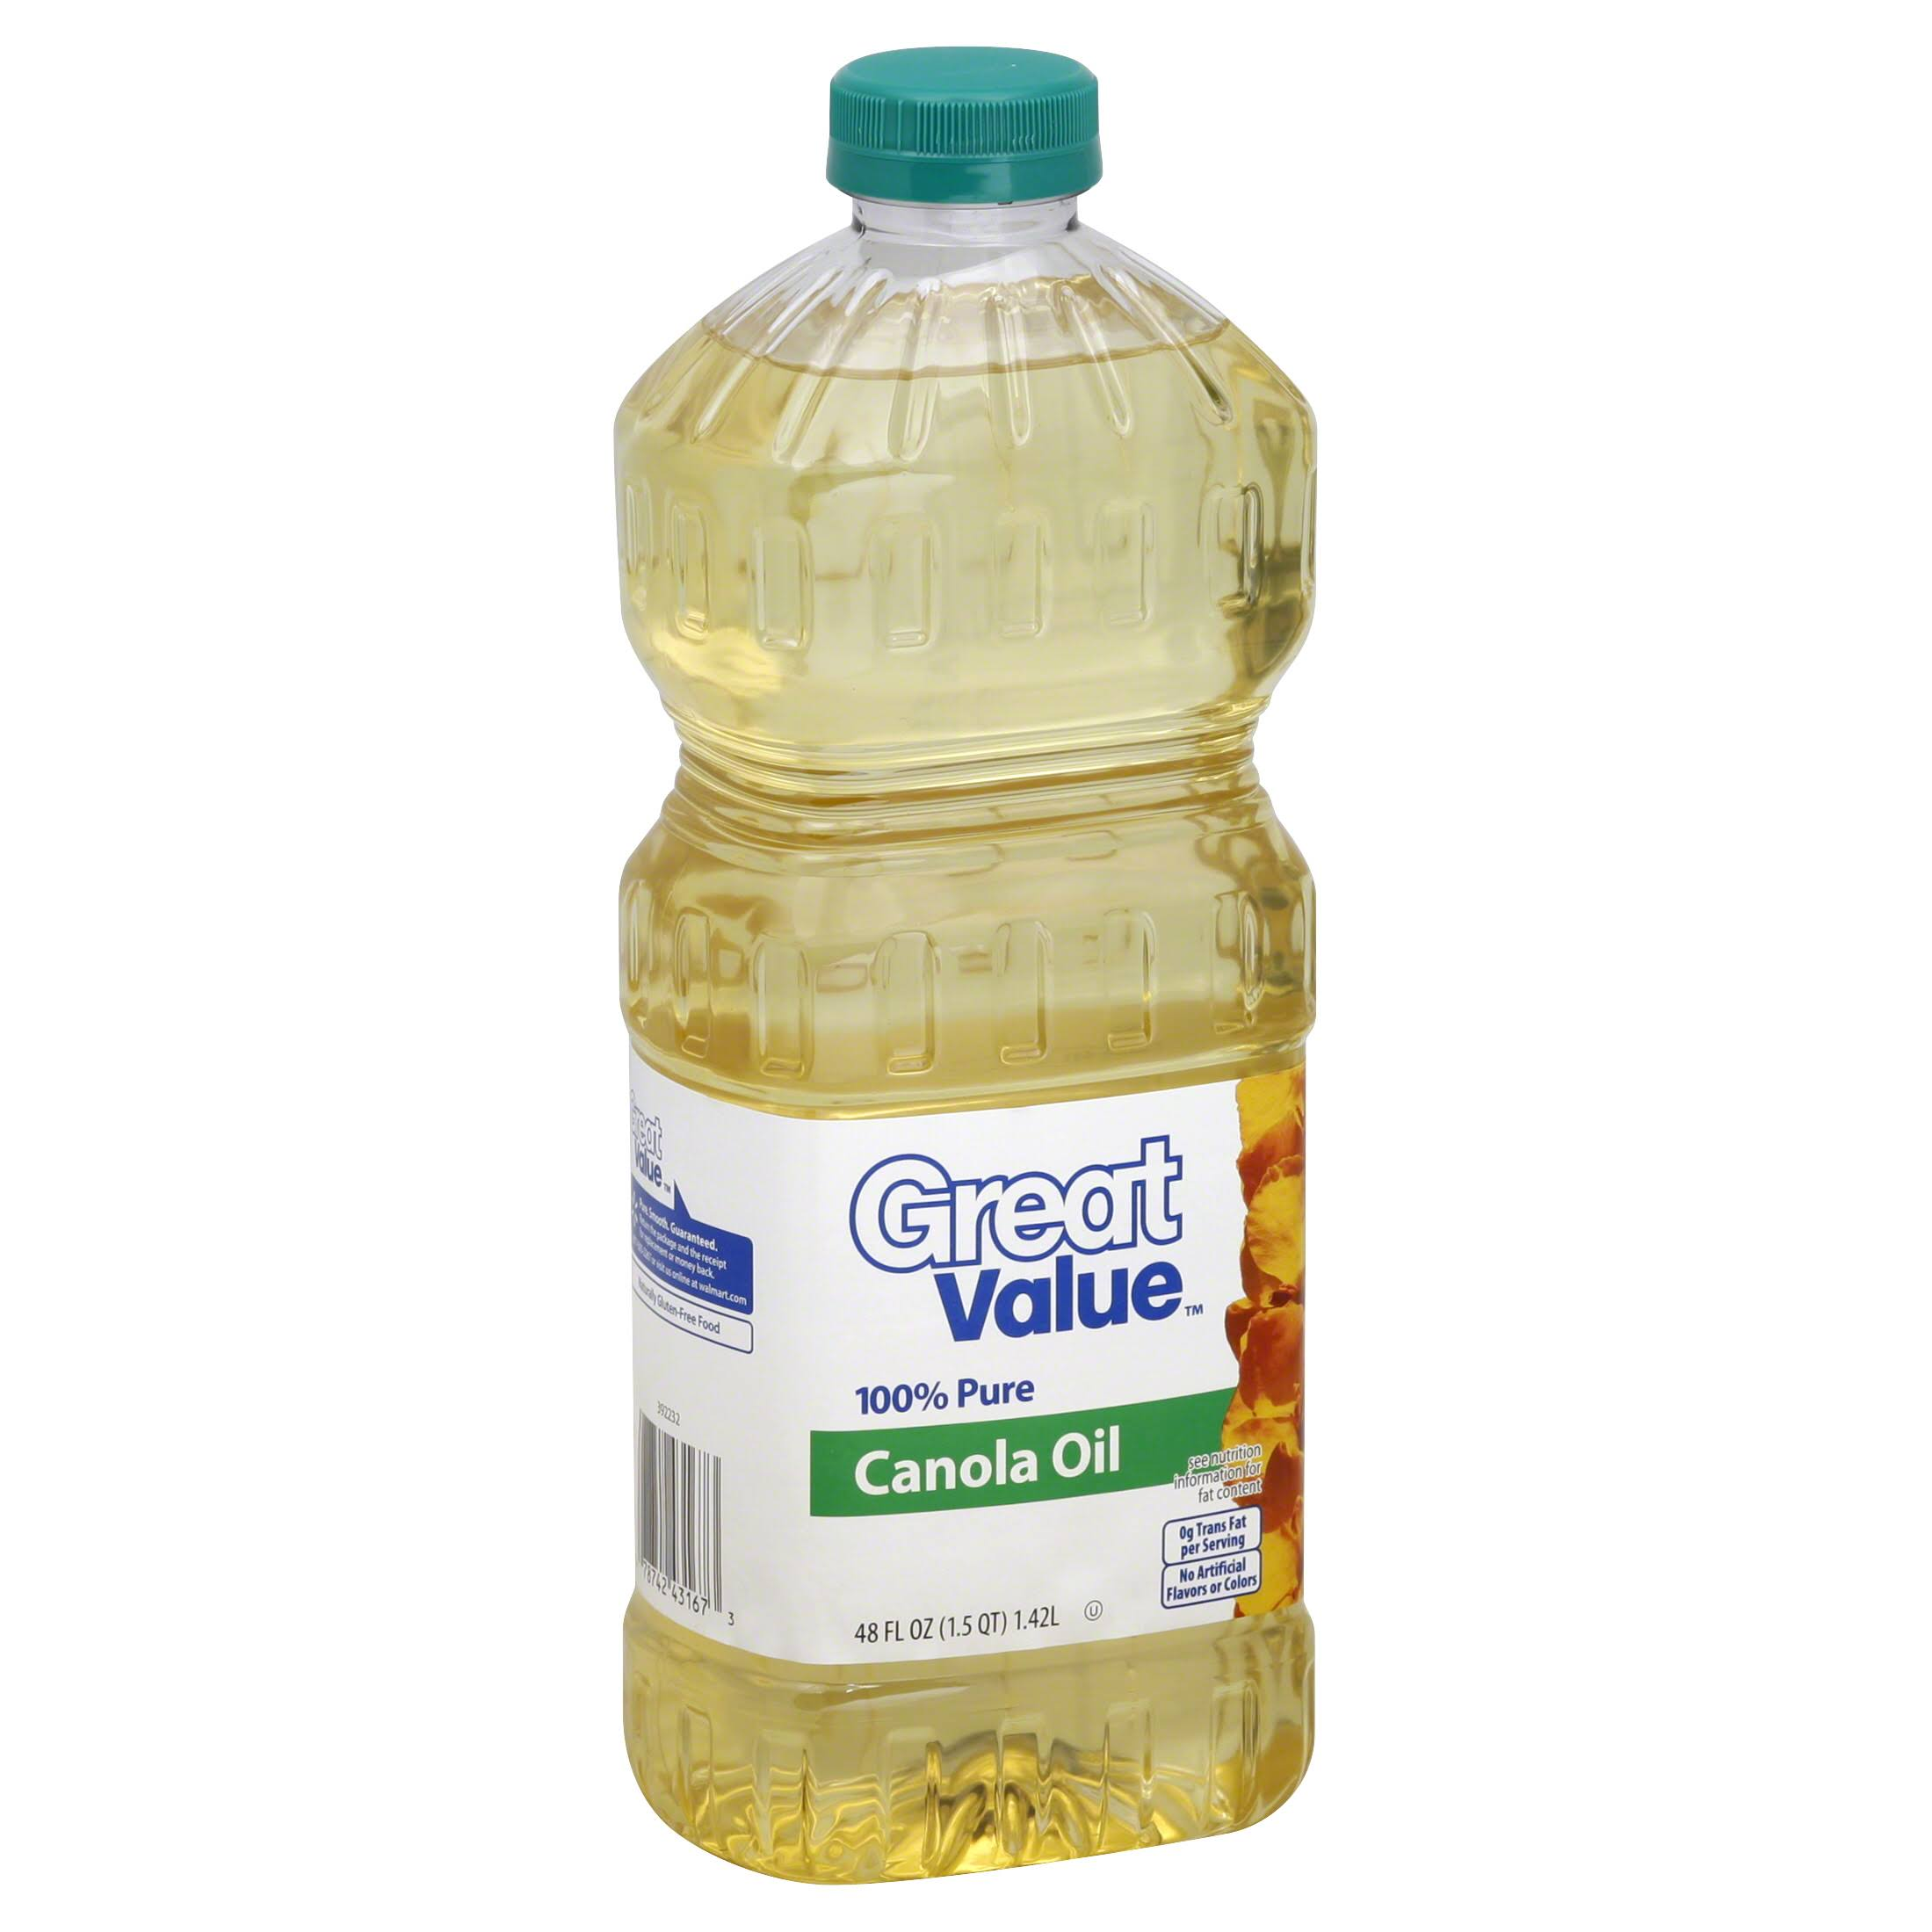 Great Value Canola Oil - 48oz